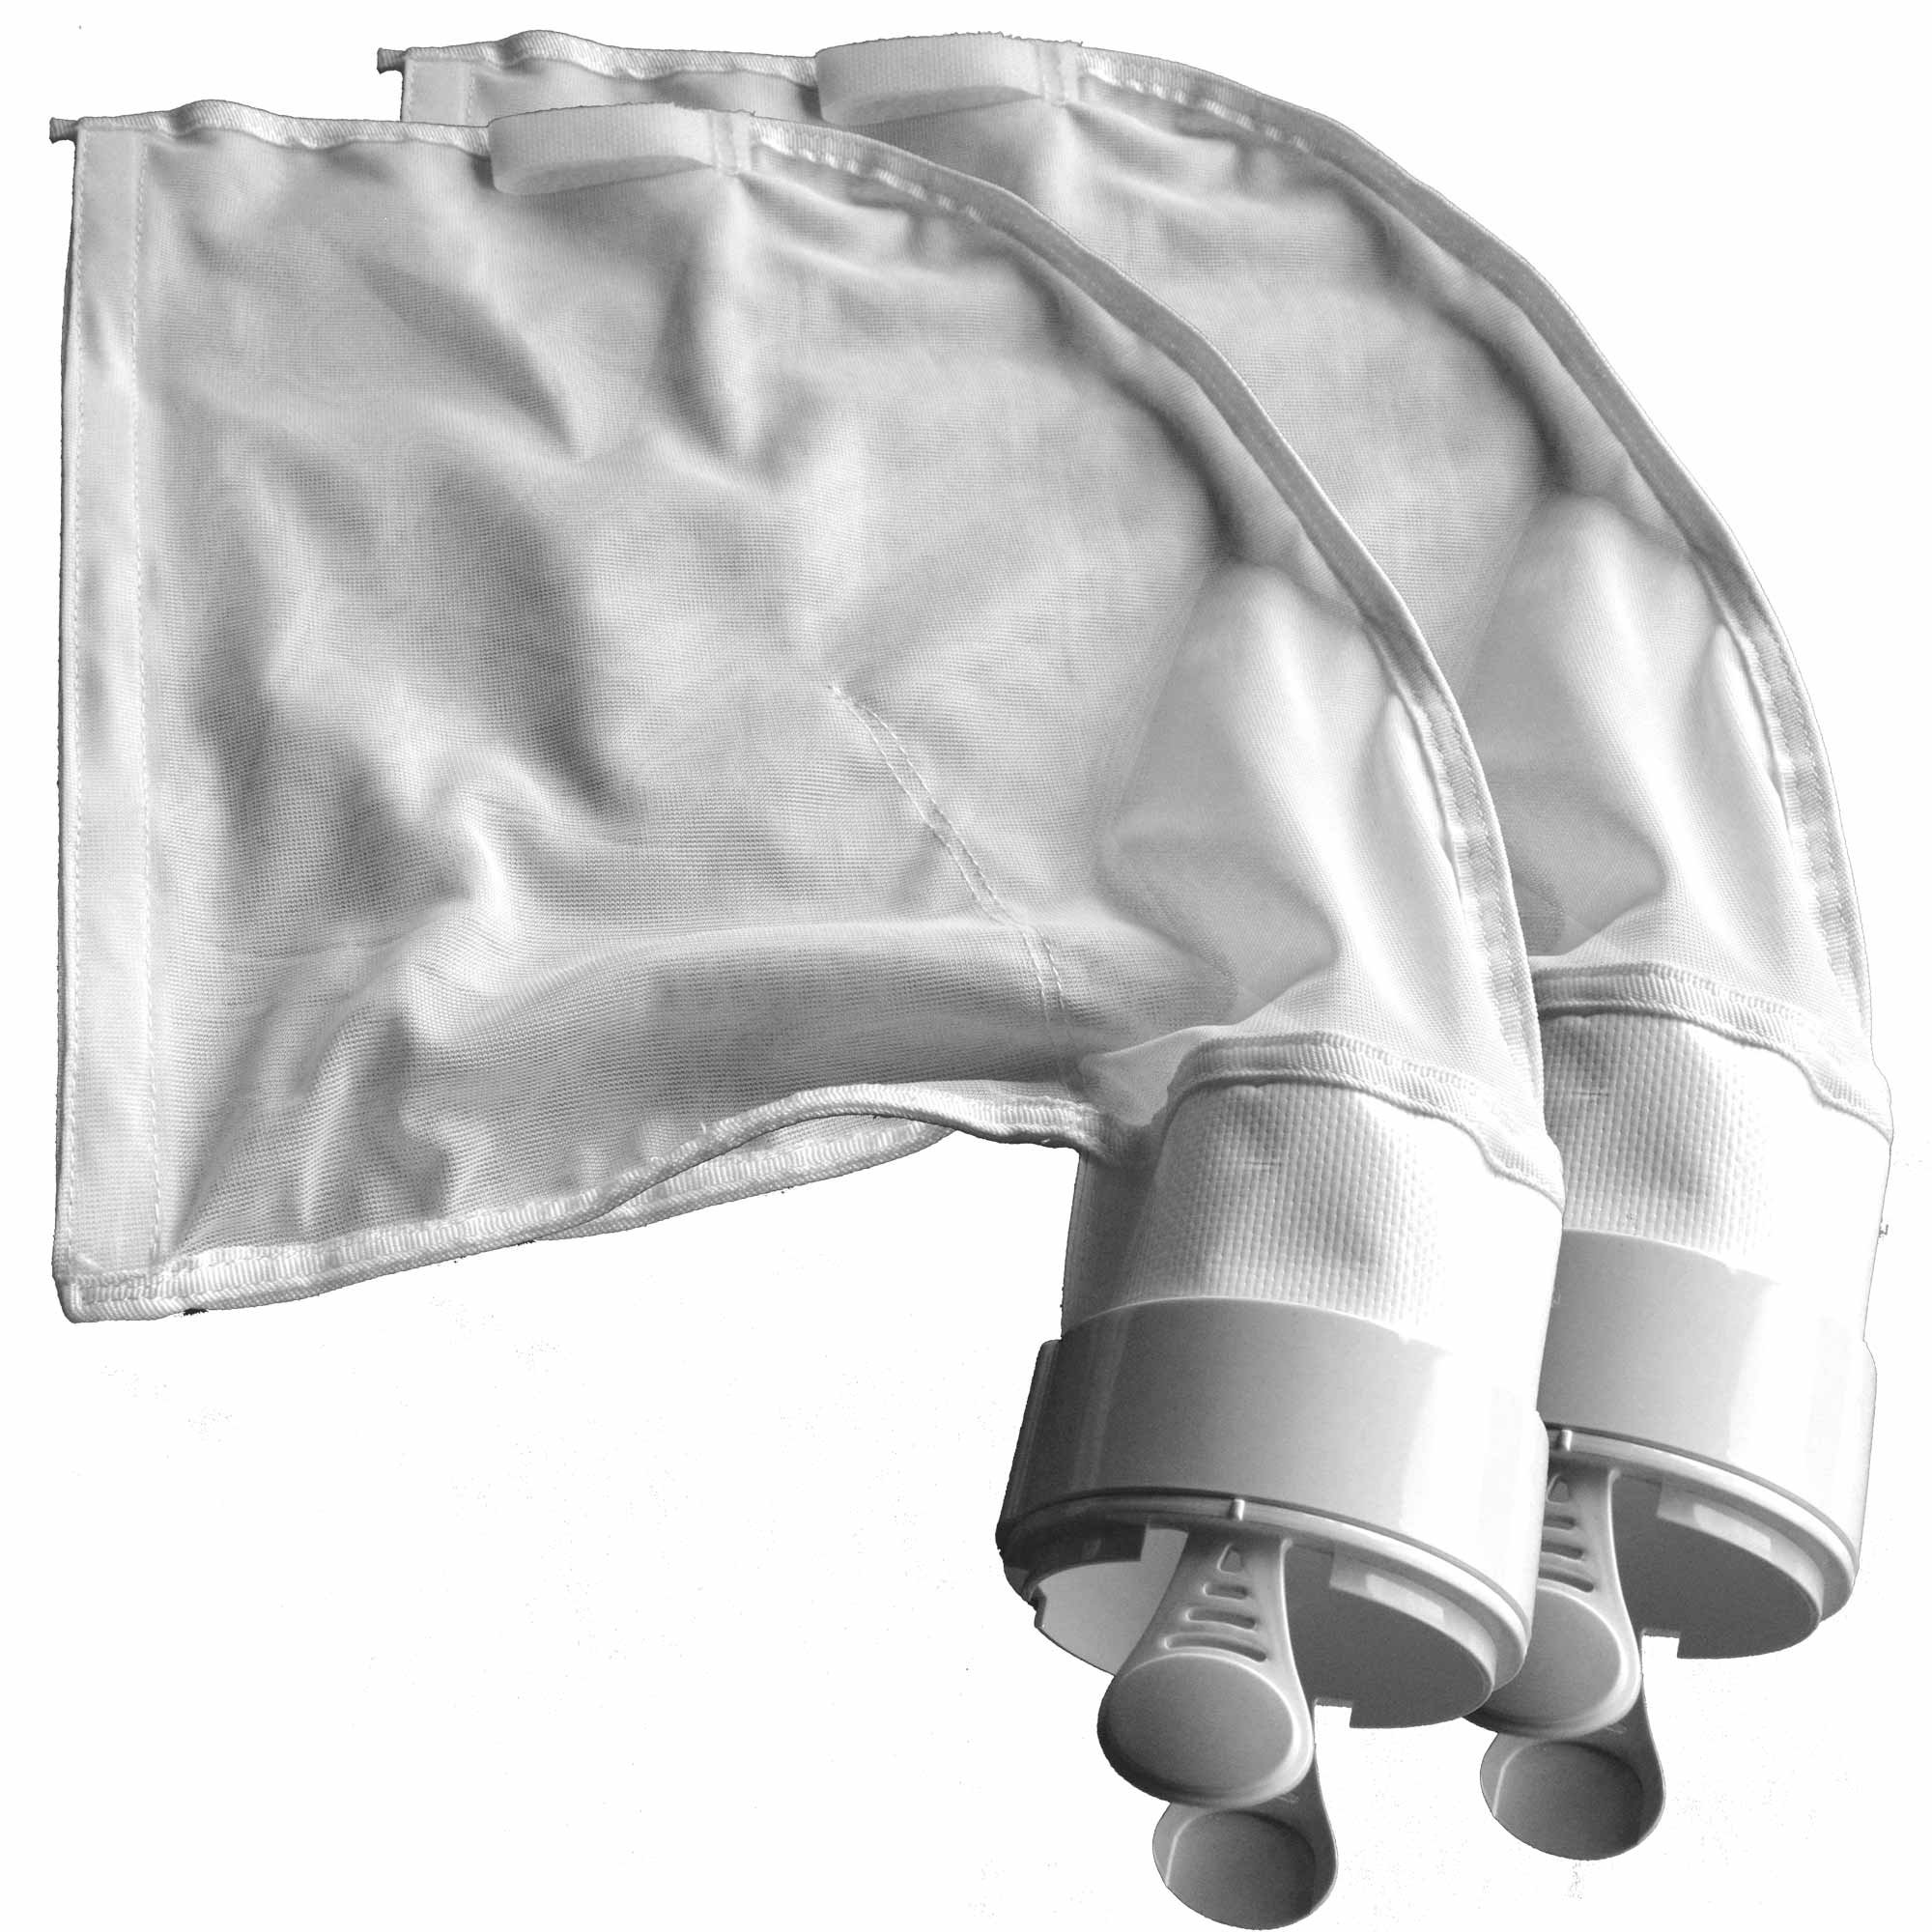 ATIE PoolSupplyTown 280 All Purpose Bag Replacement Fits for Polaris 280, 480 Pool Cleaner All Purpose Bag K16-2 Pack by ATIE